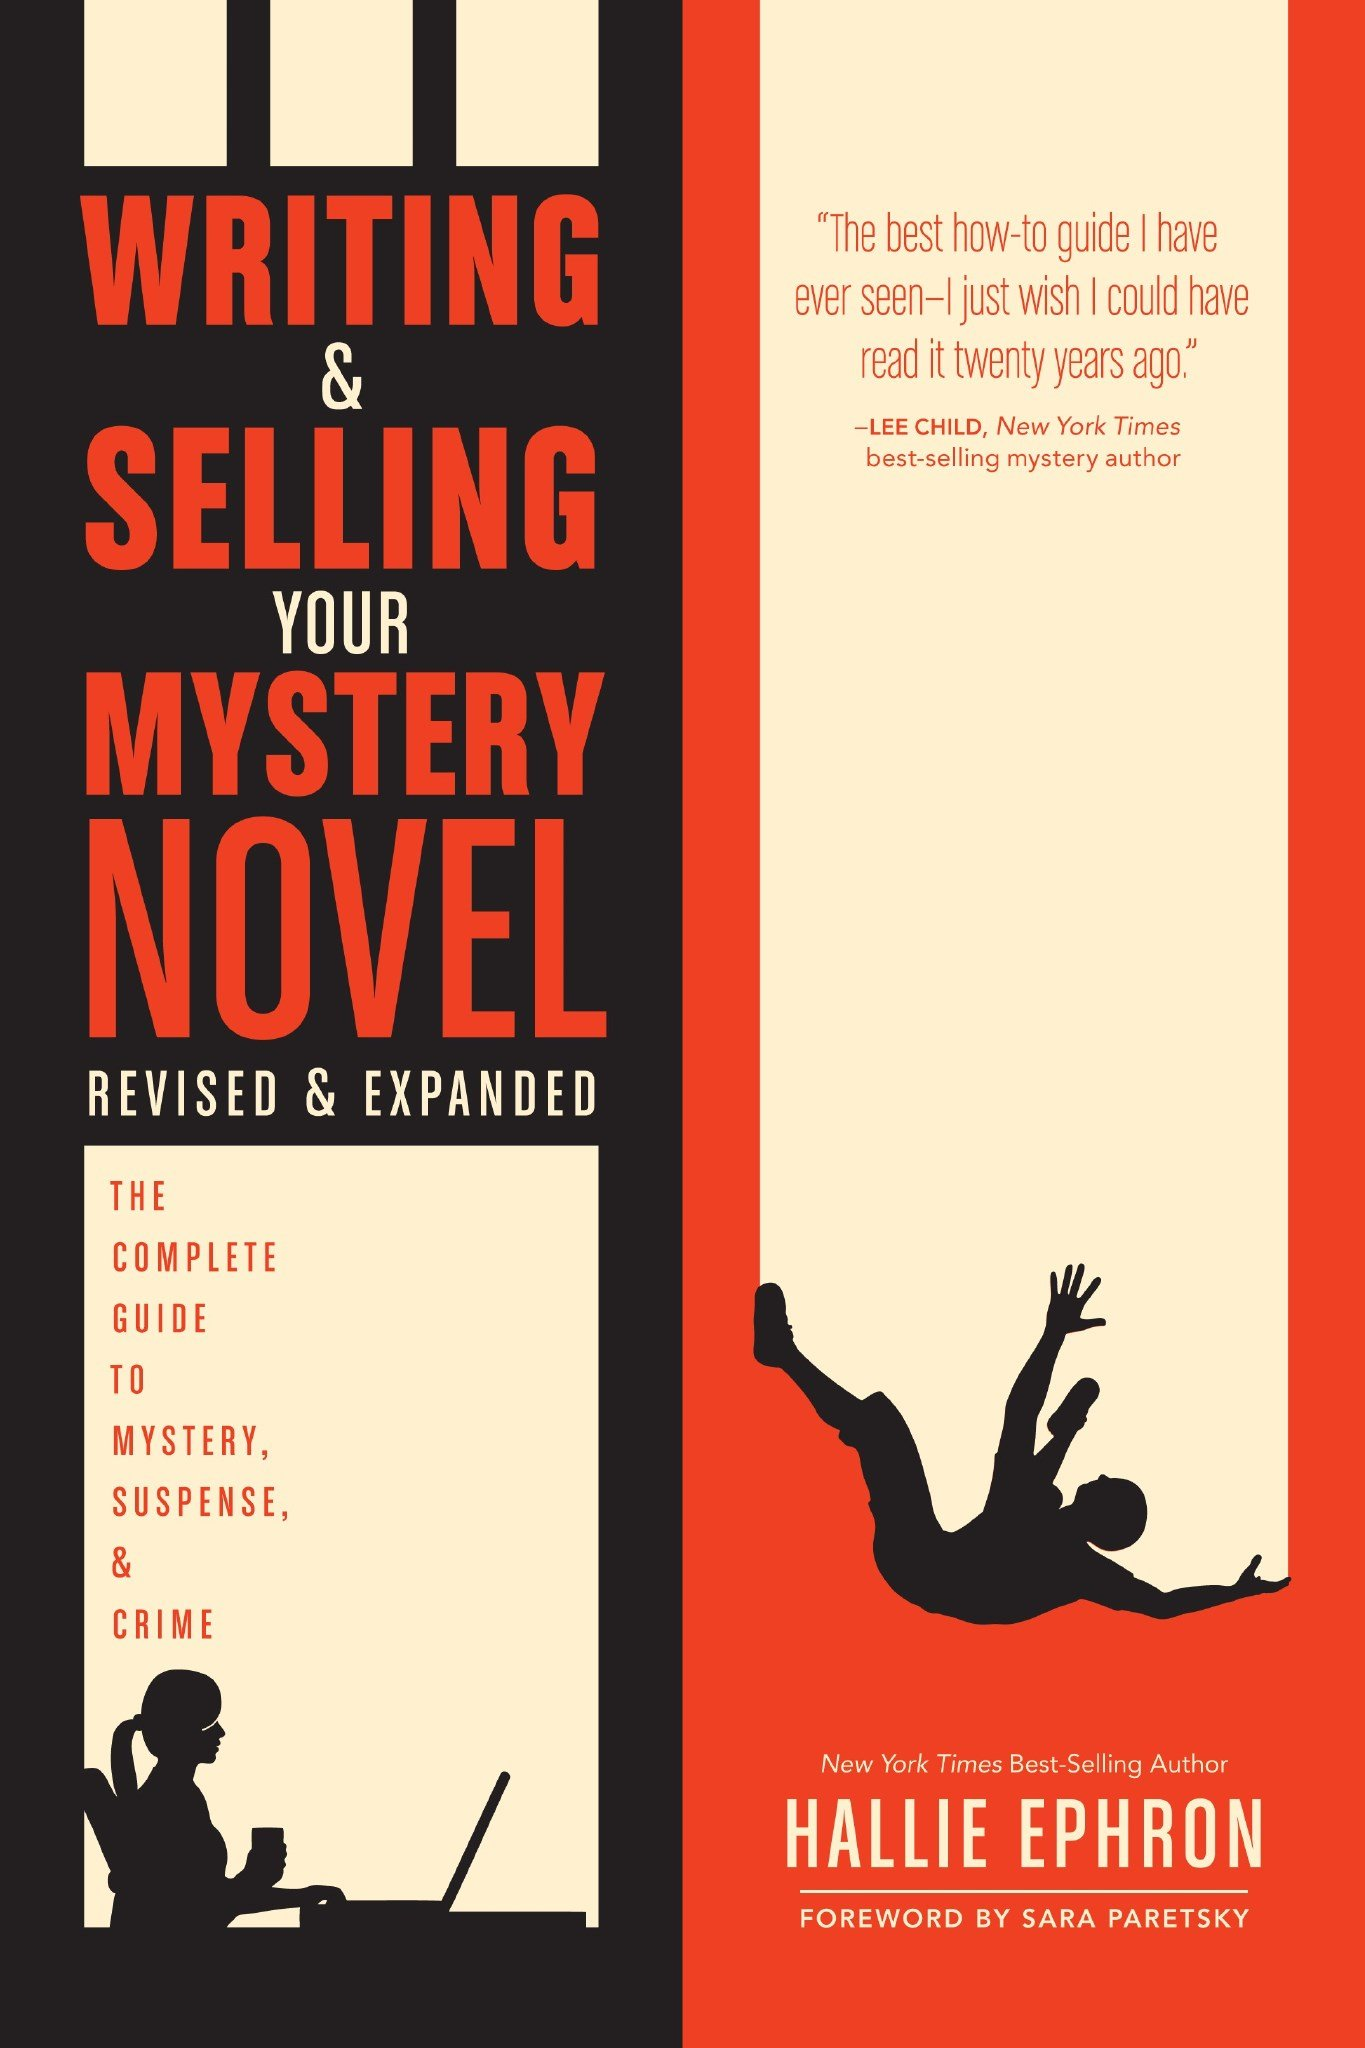 Writing and Selling Your Mystery Novel Revised and Expanded Edition: The Complete Guide to Mystery, Suspense, and Crime by Writer's Digest